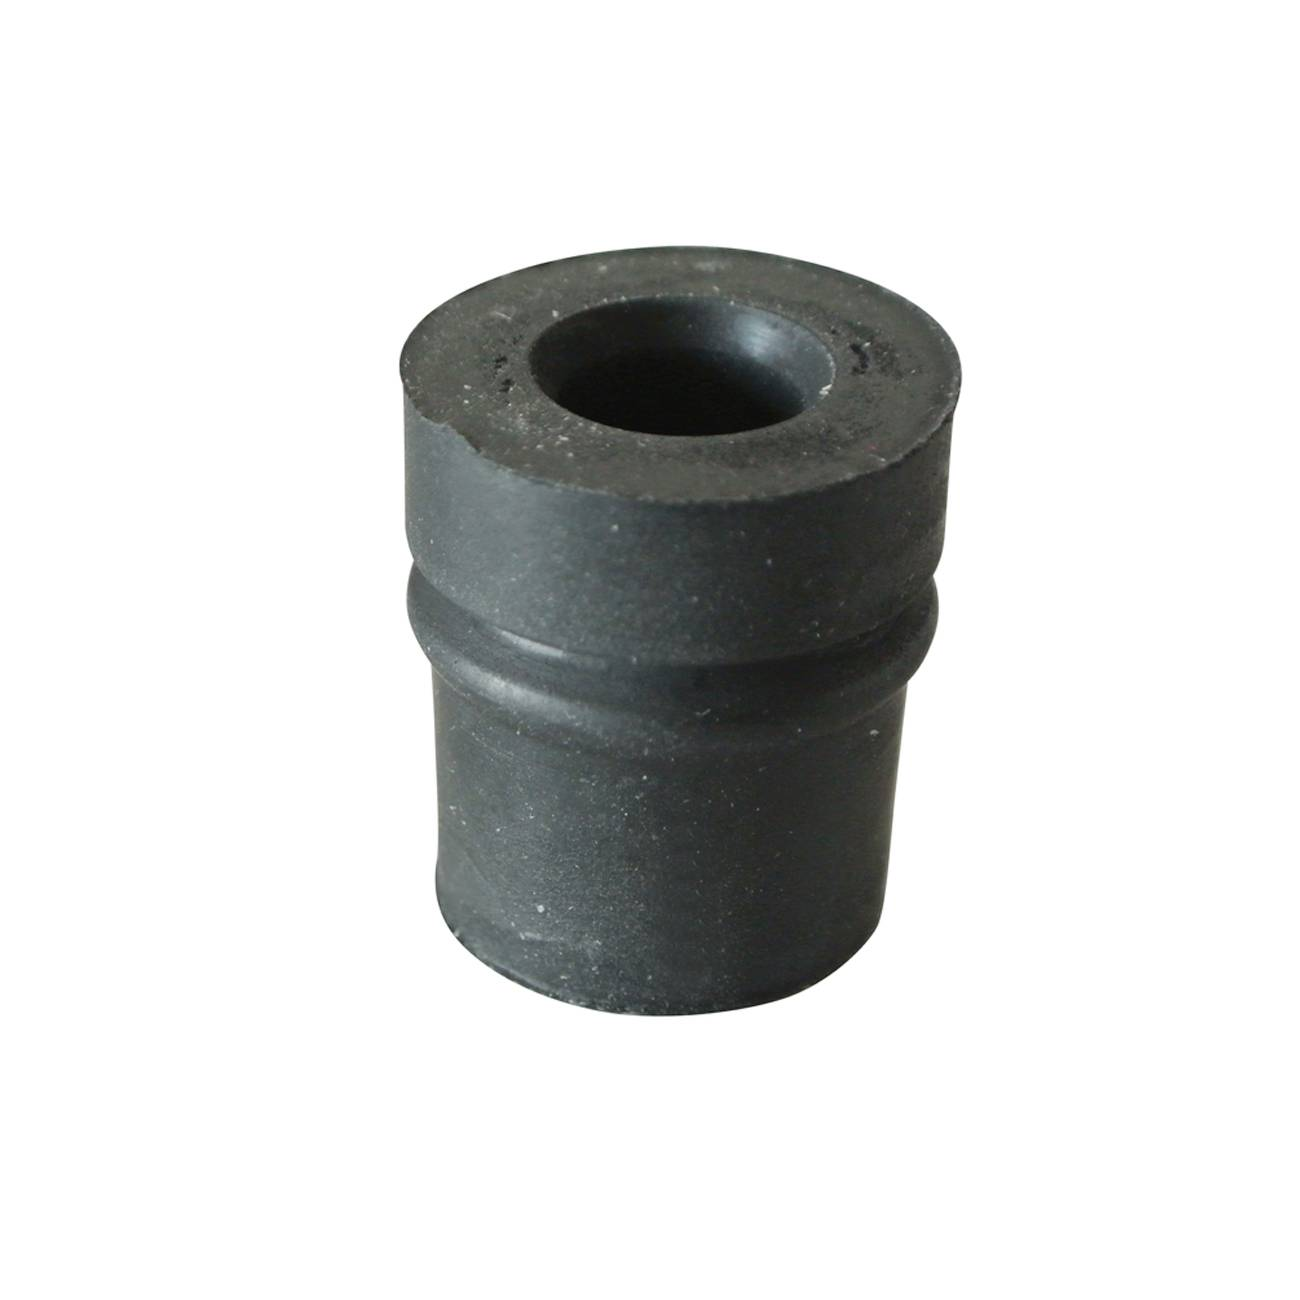 Annular Buffer For STIHL 044 064 066 MS460 MS461 MS640 MS660 Chainsaw